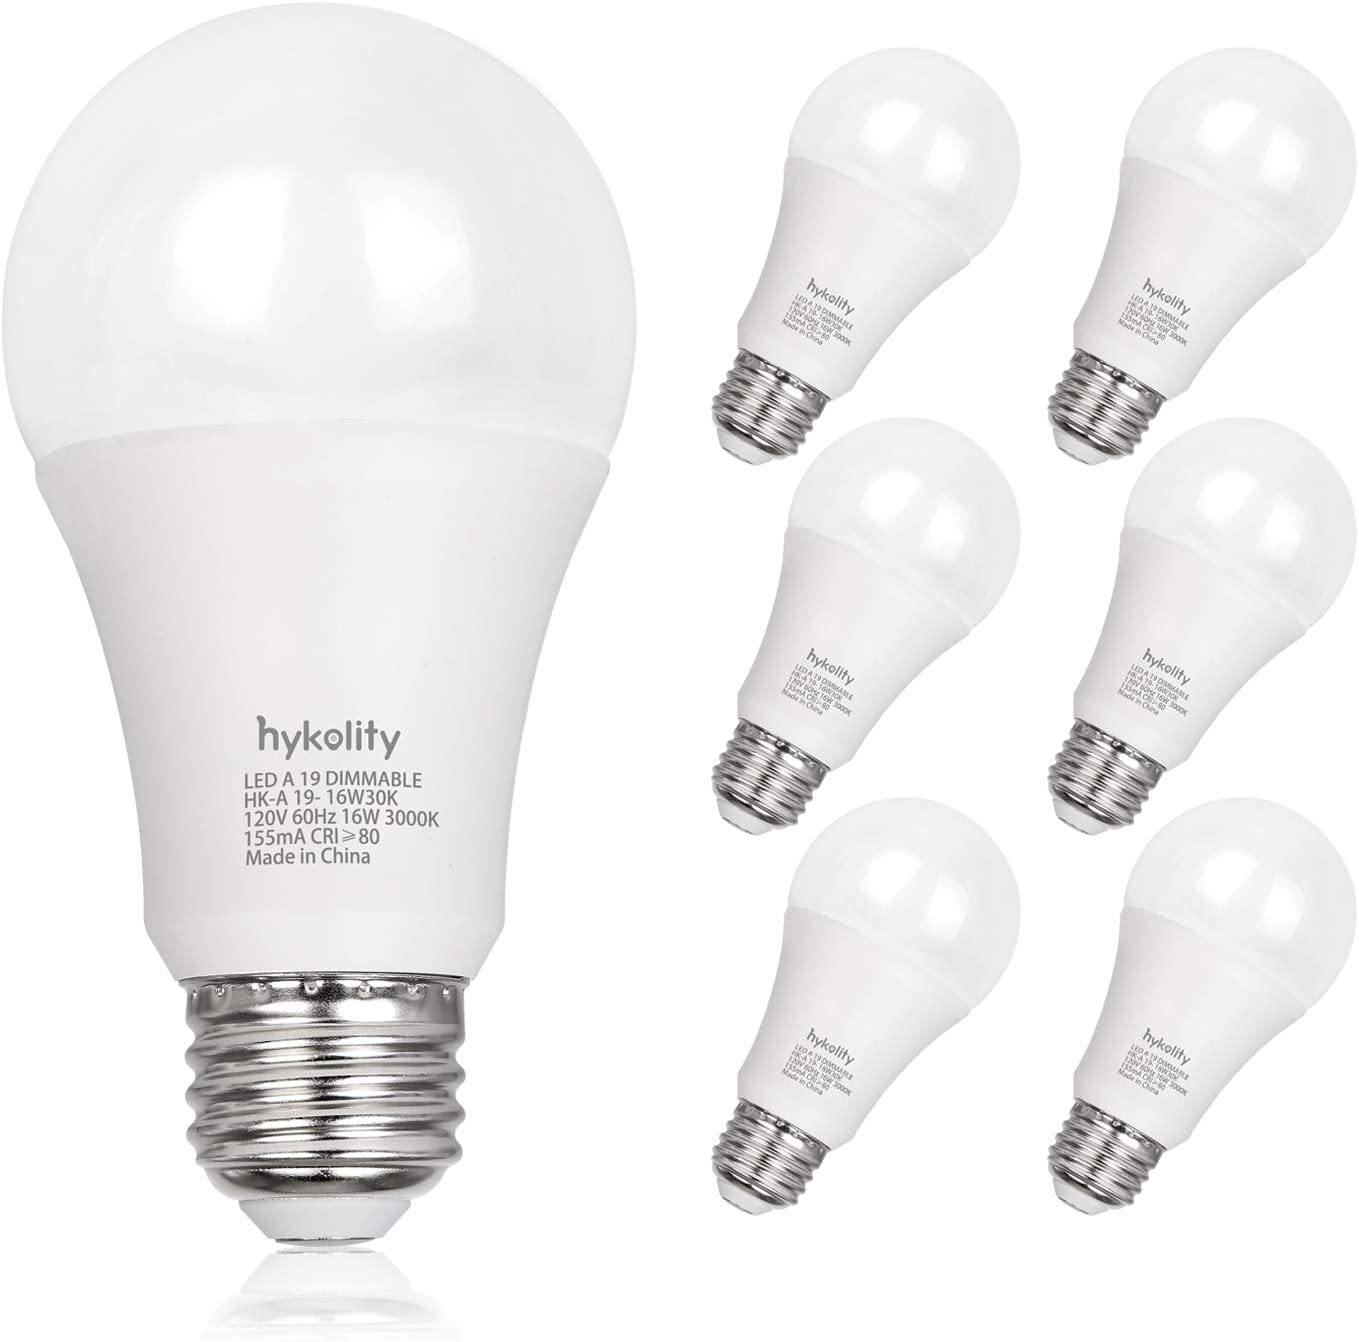 Hykolity Dimmable 100W Equivalent A19 LED Light Bulb, 1600 Lumens, 16W, 3000K Warm White, E26 Medium Base, UL Listed (6 Pack)